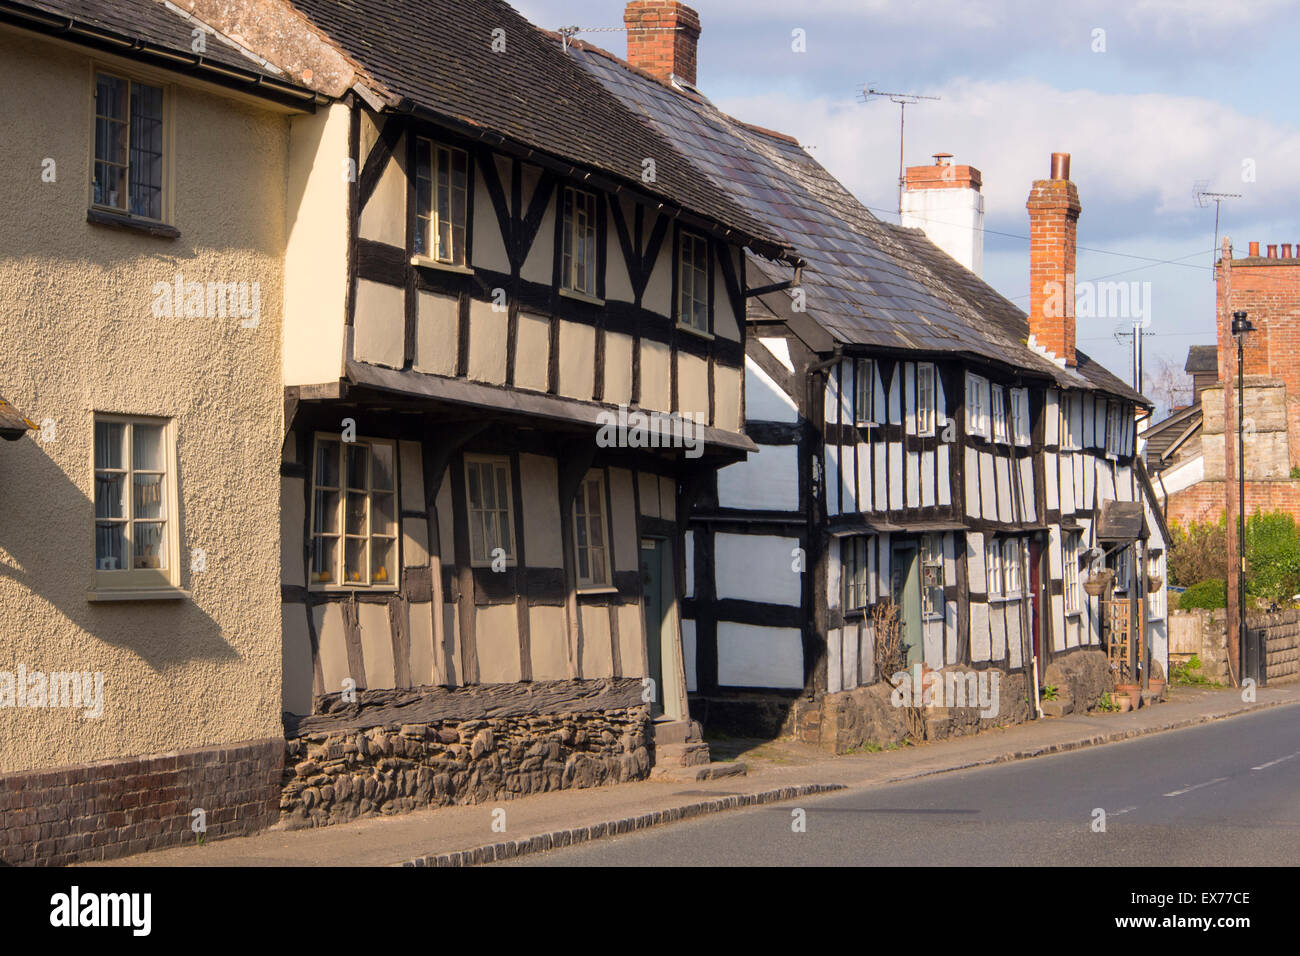 Images of timber framed houses